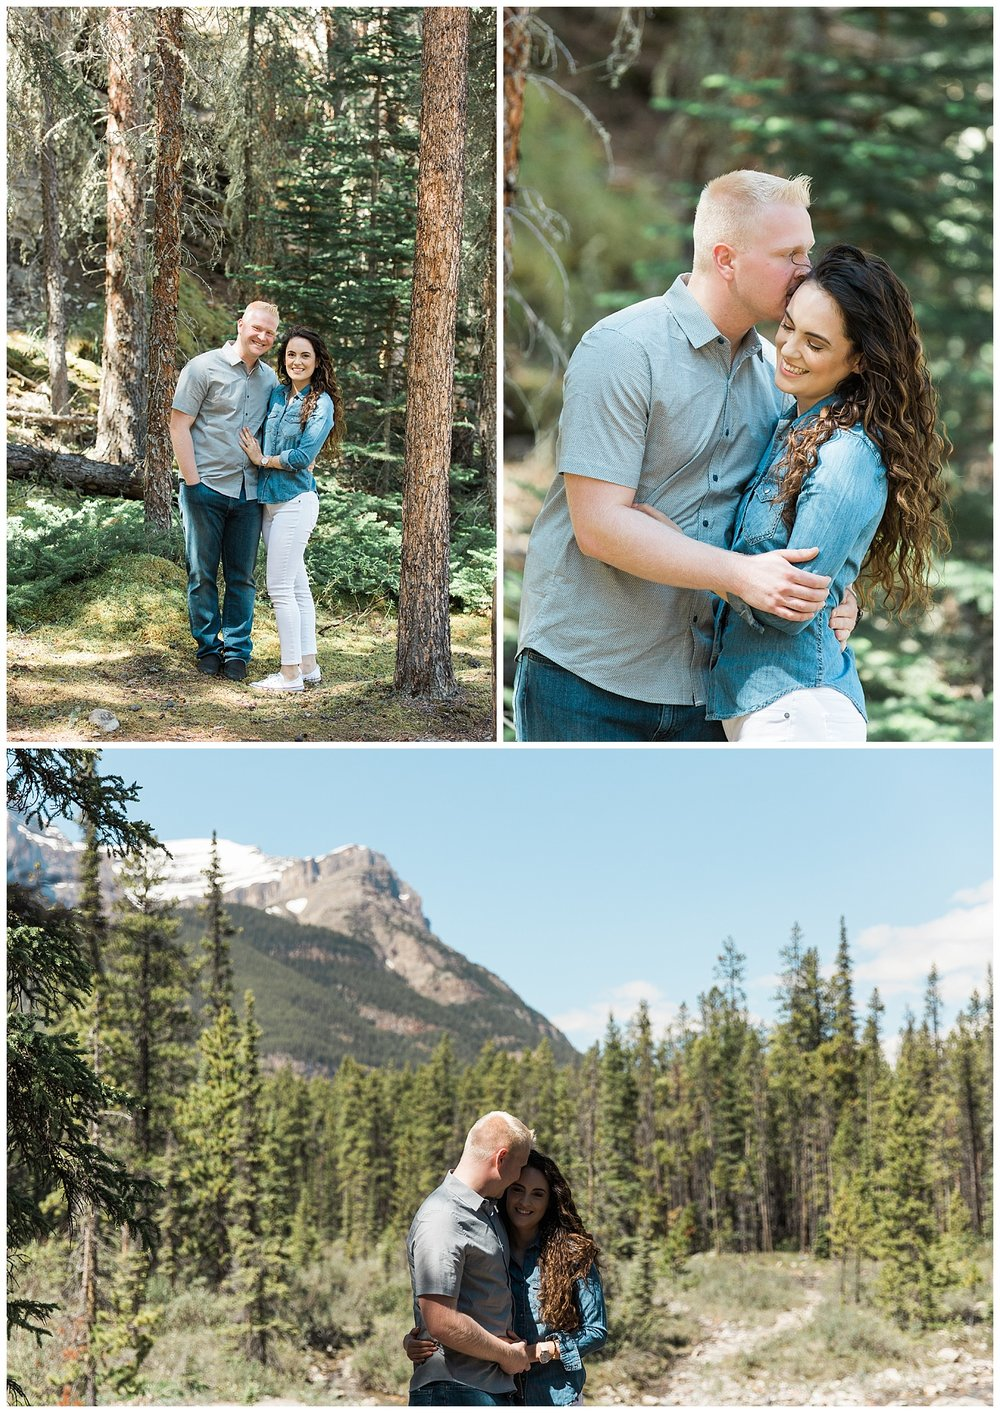 calgary-engagement-photographer-helicopter-elopement-banff-4.jpg